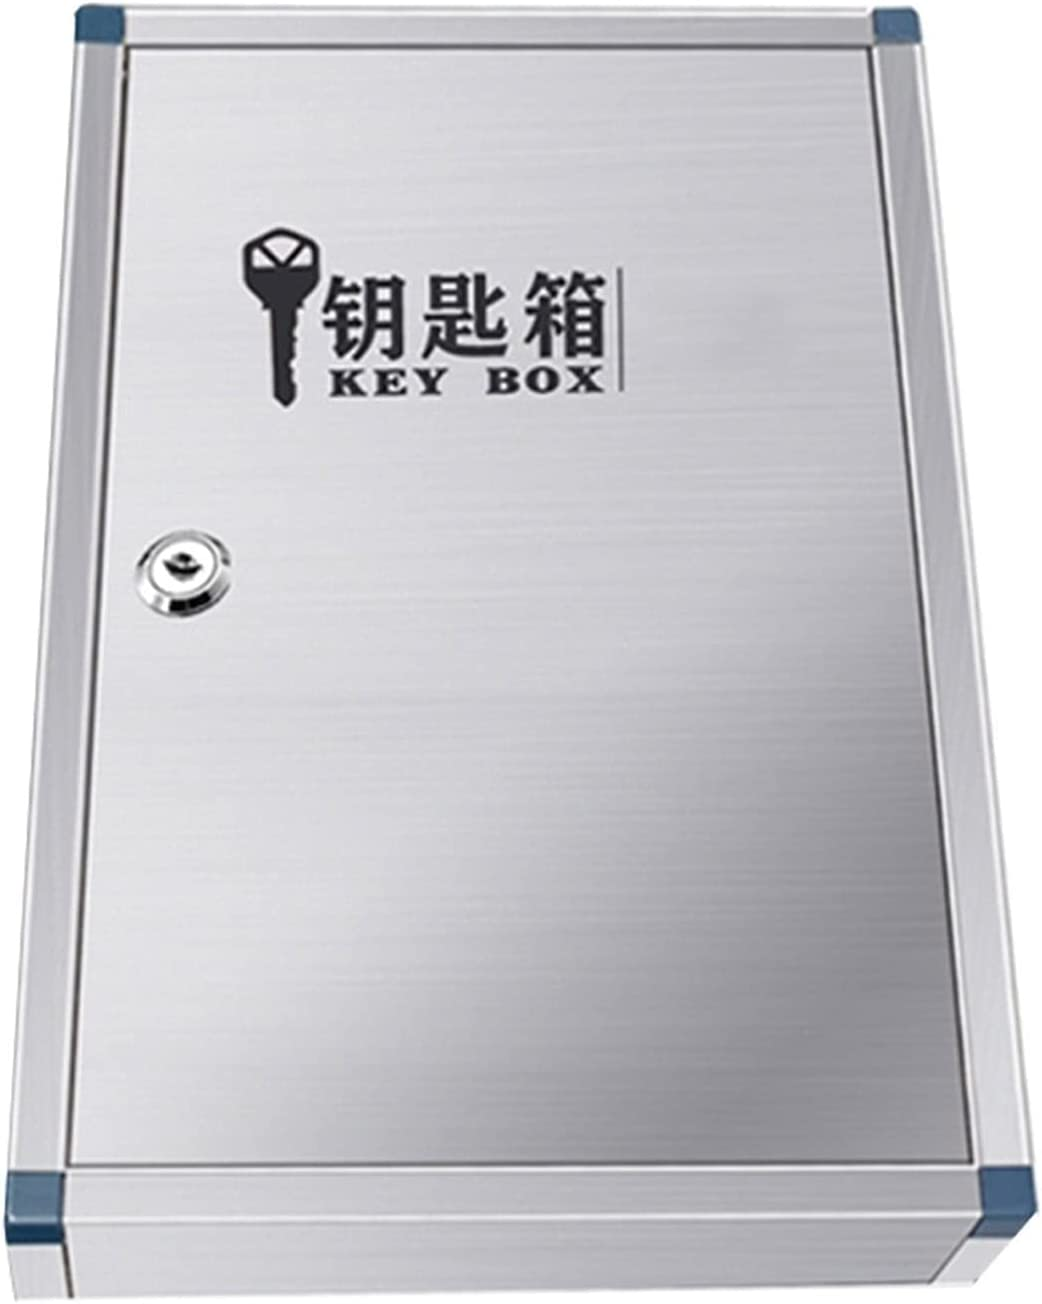 LICGHONG Key Lock Box Max 46% OFF Organizer Wall Max 78% OFF Boxes Mounted Stainless